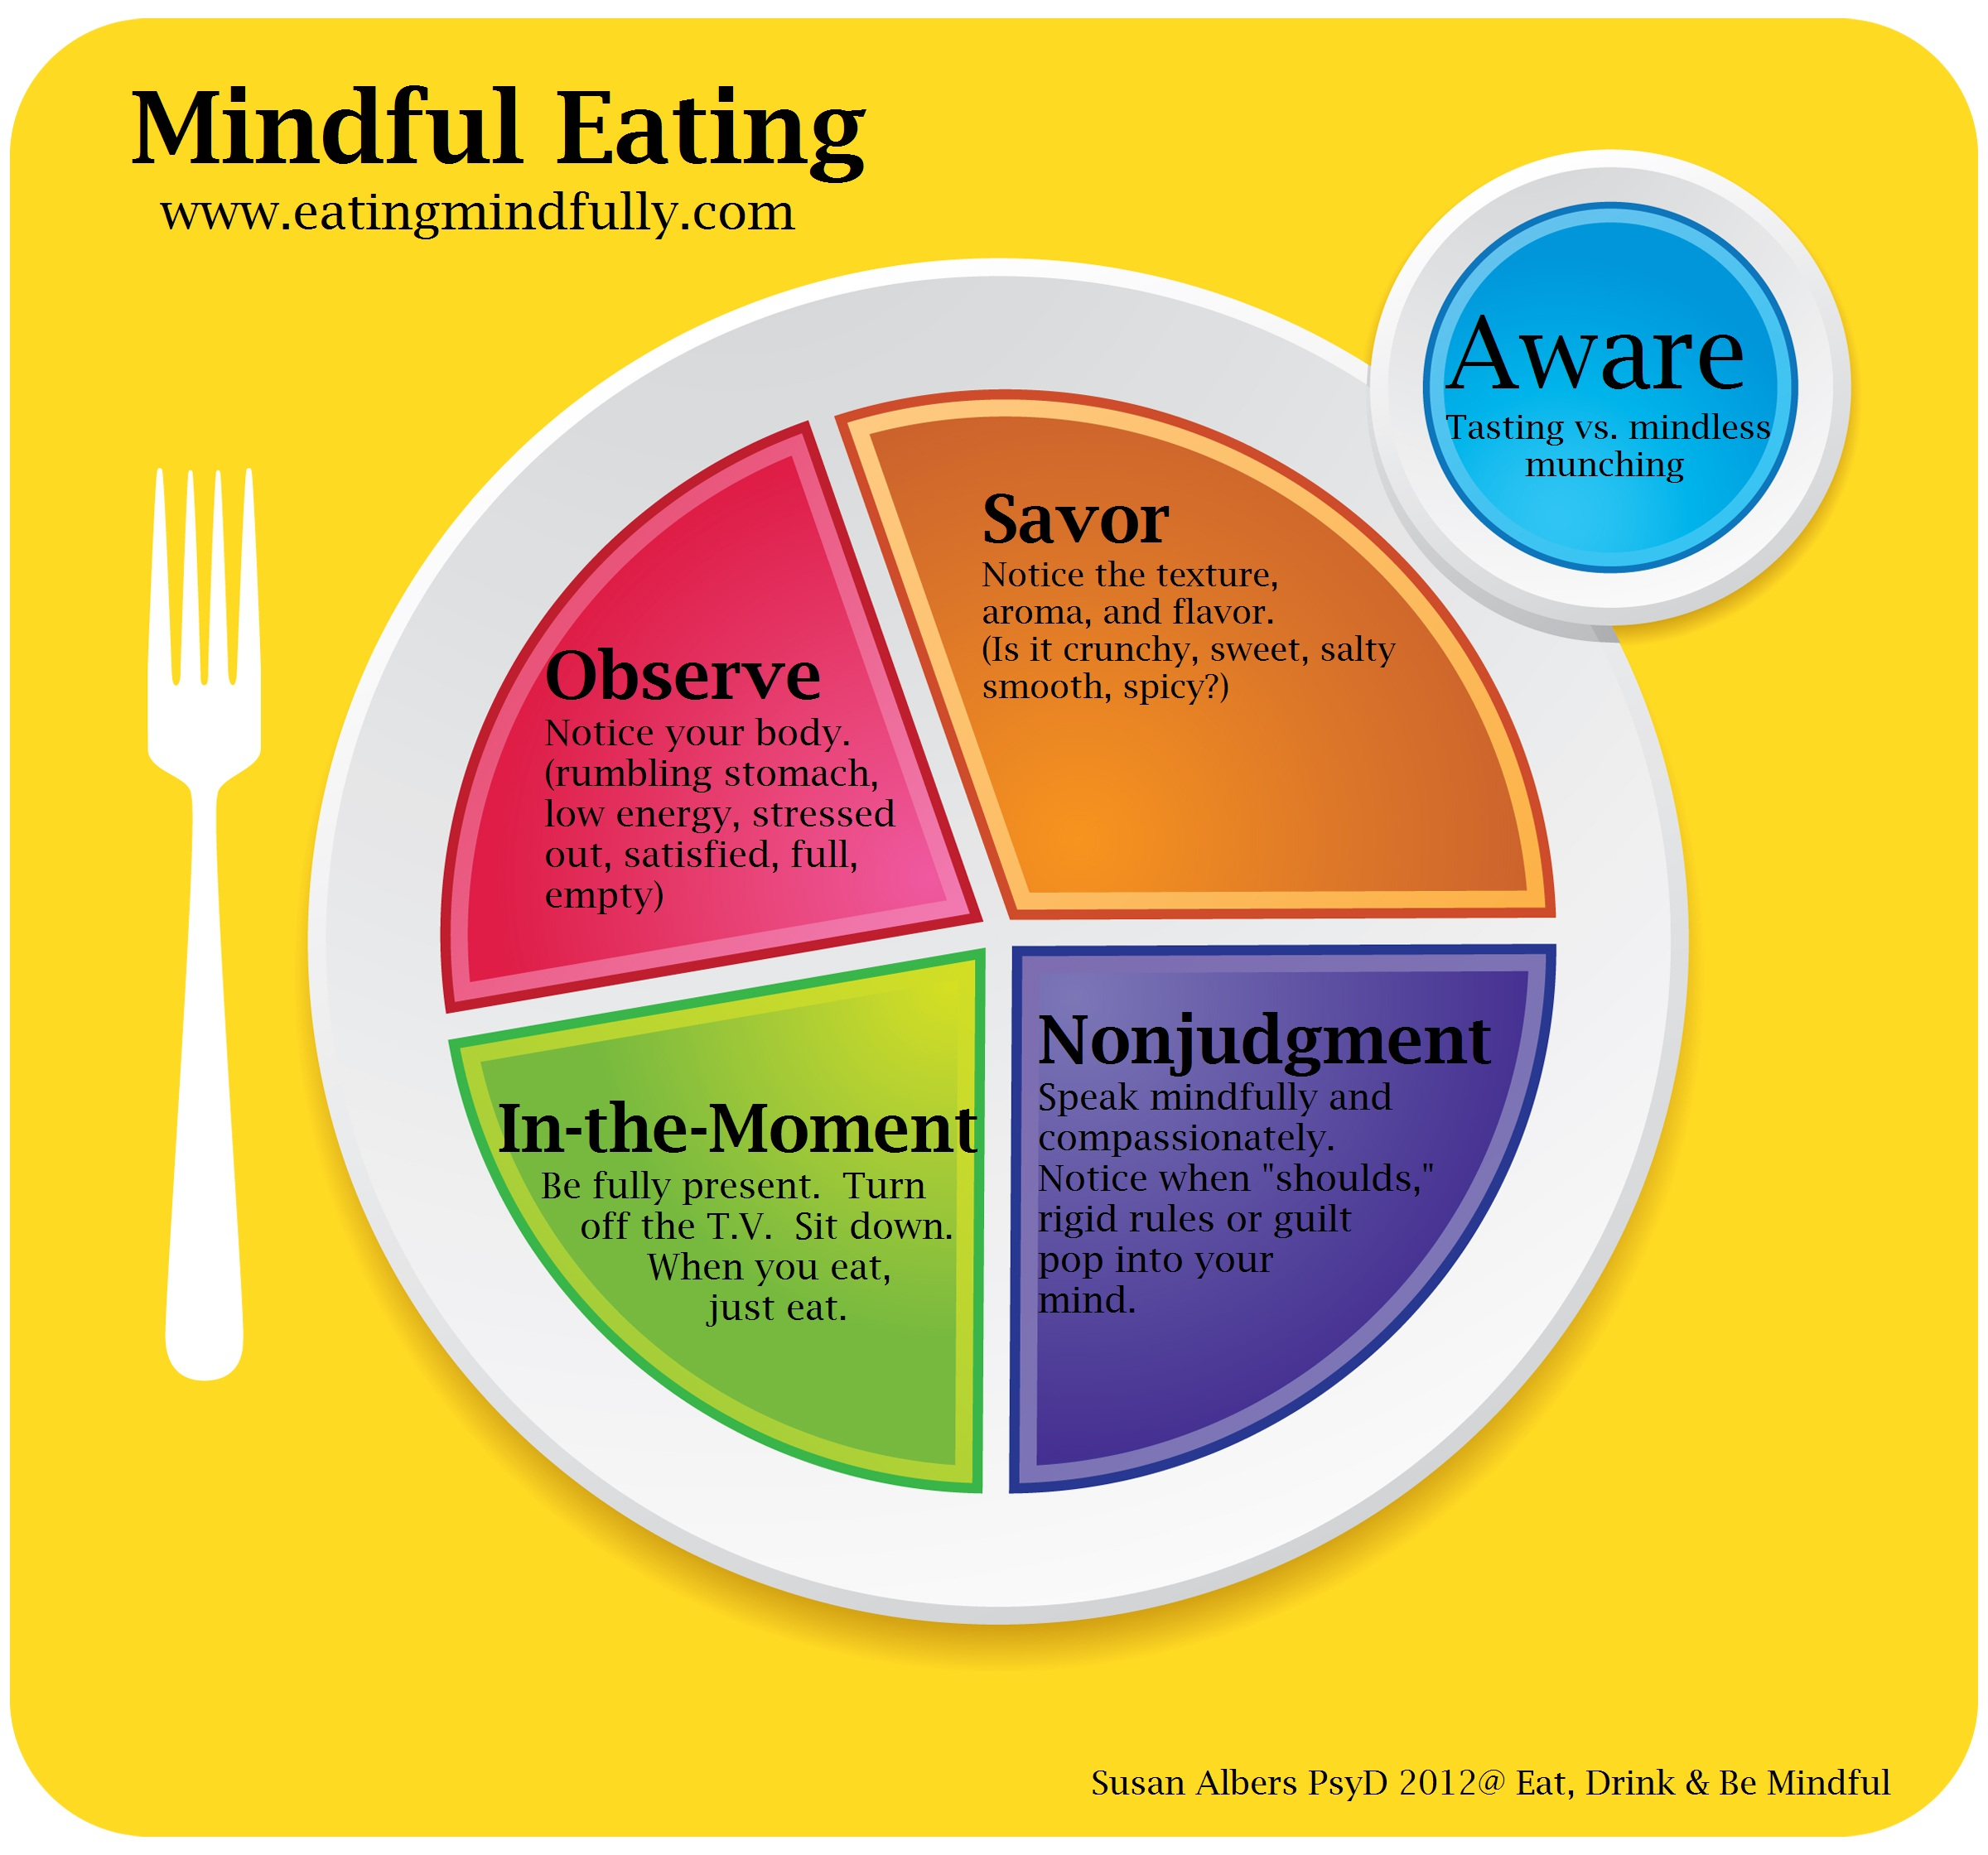 Mindful eating techniques